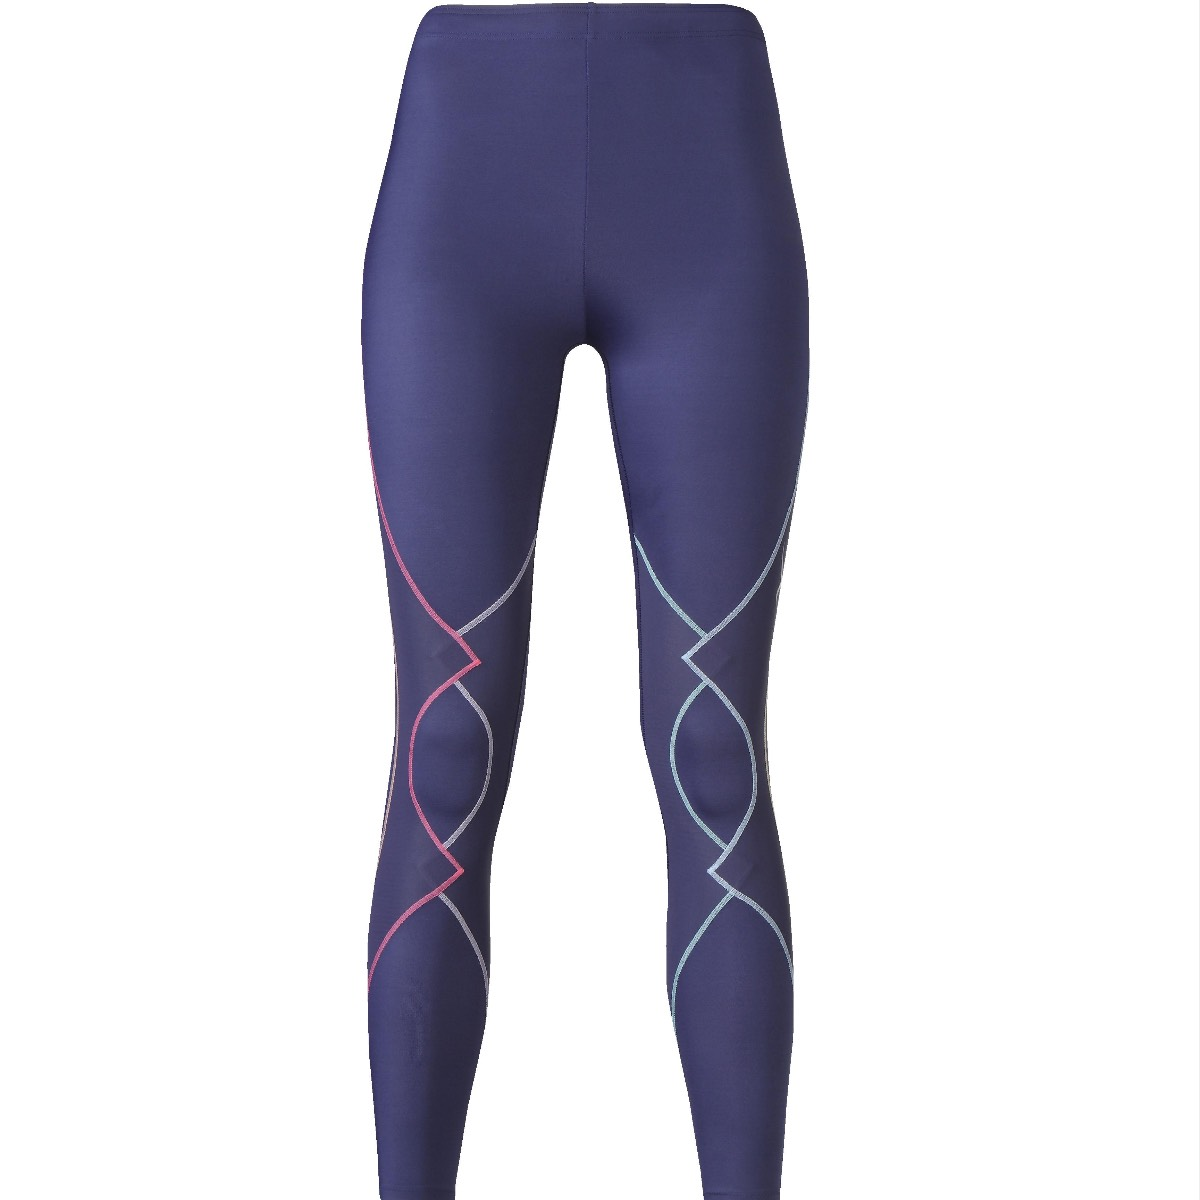 Cw-x Sports Compression Female